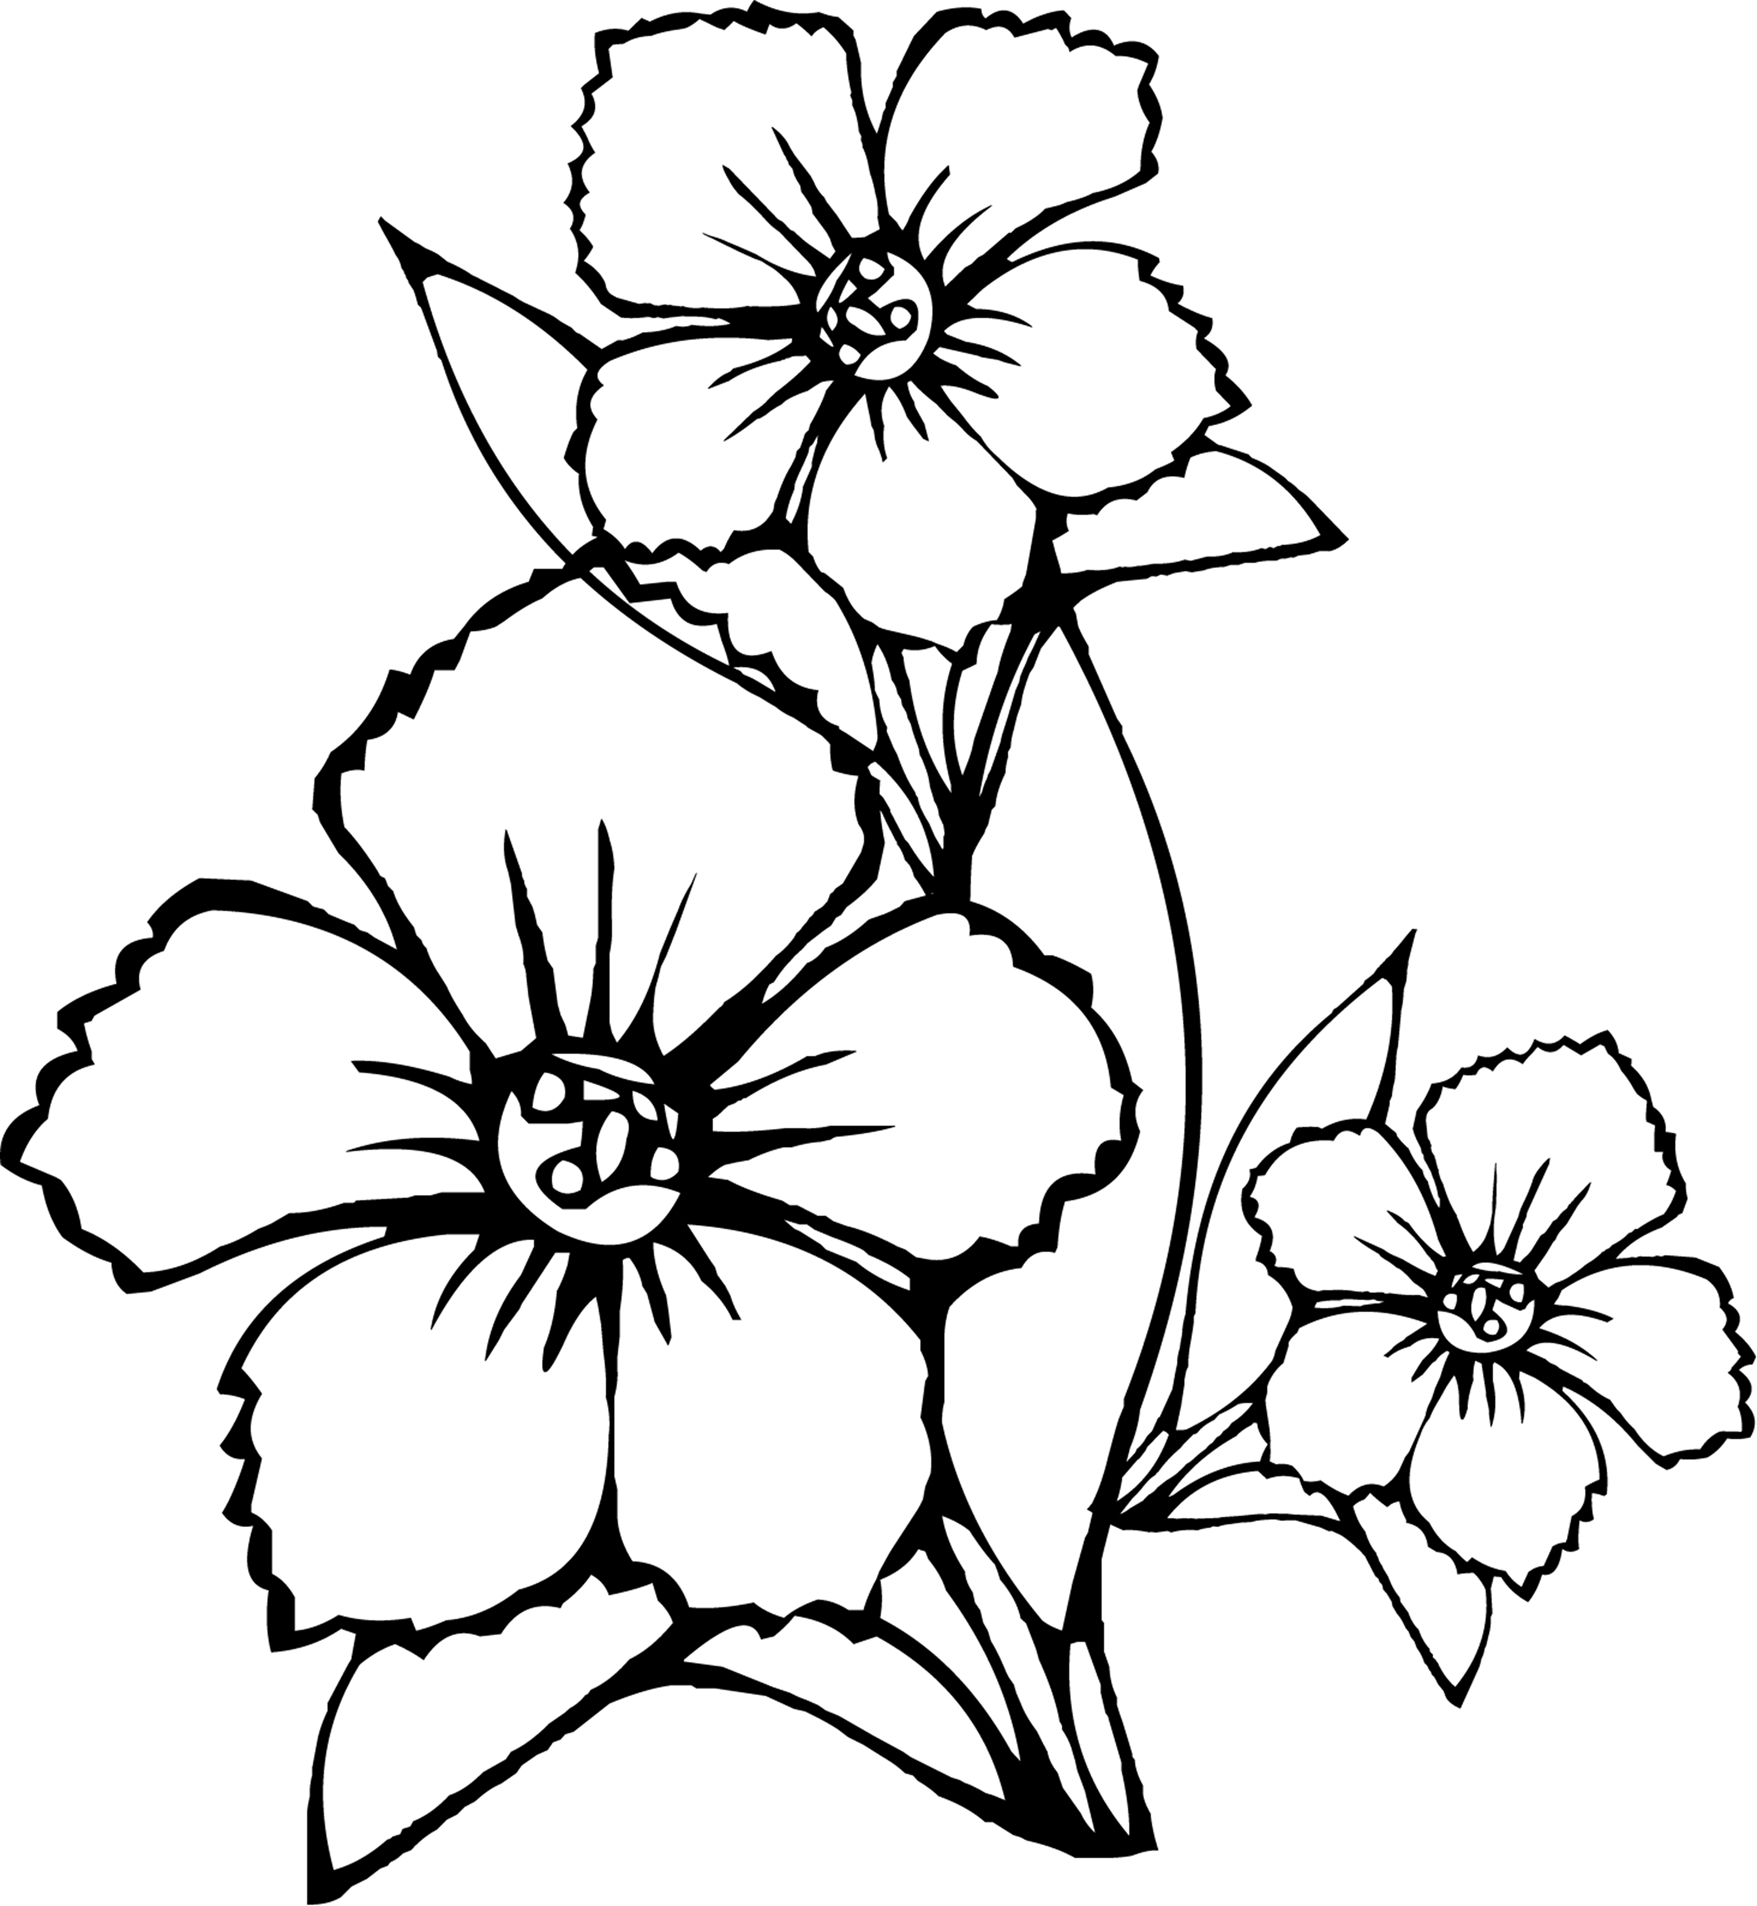 picture of flowers to print amaryllis flower coloring page free printable coloring pages flowers to print of picture